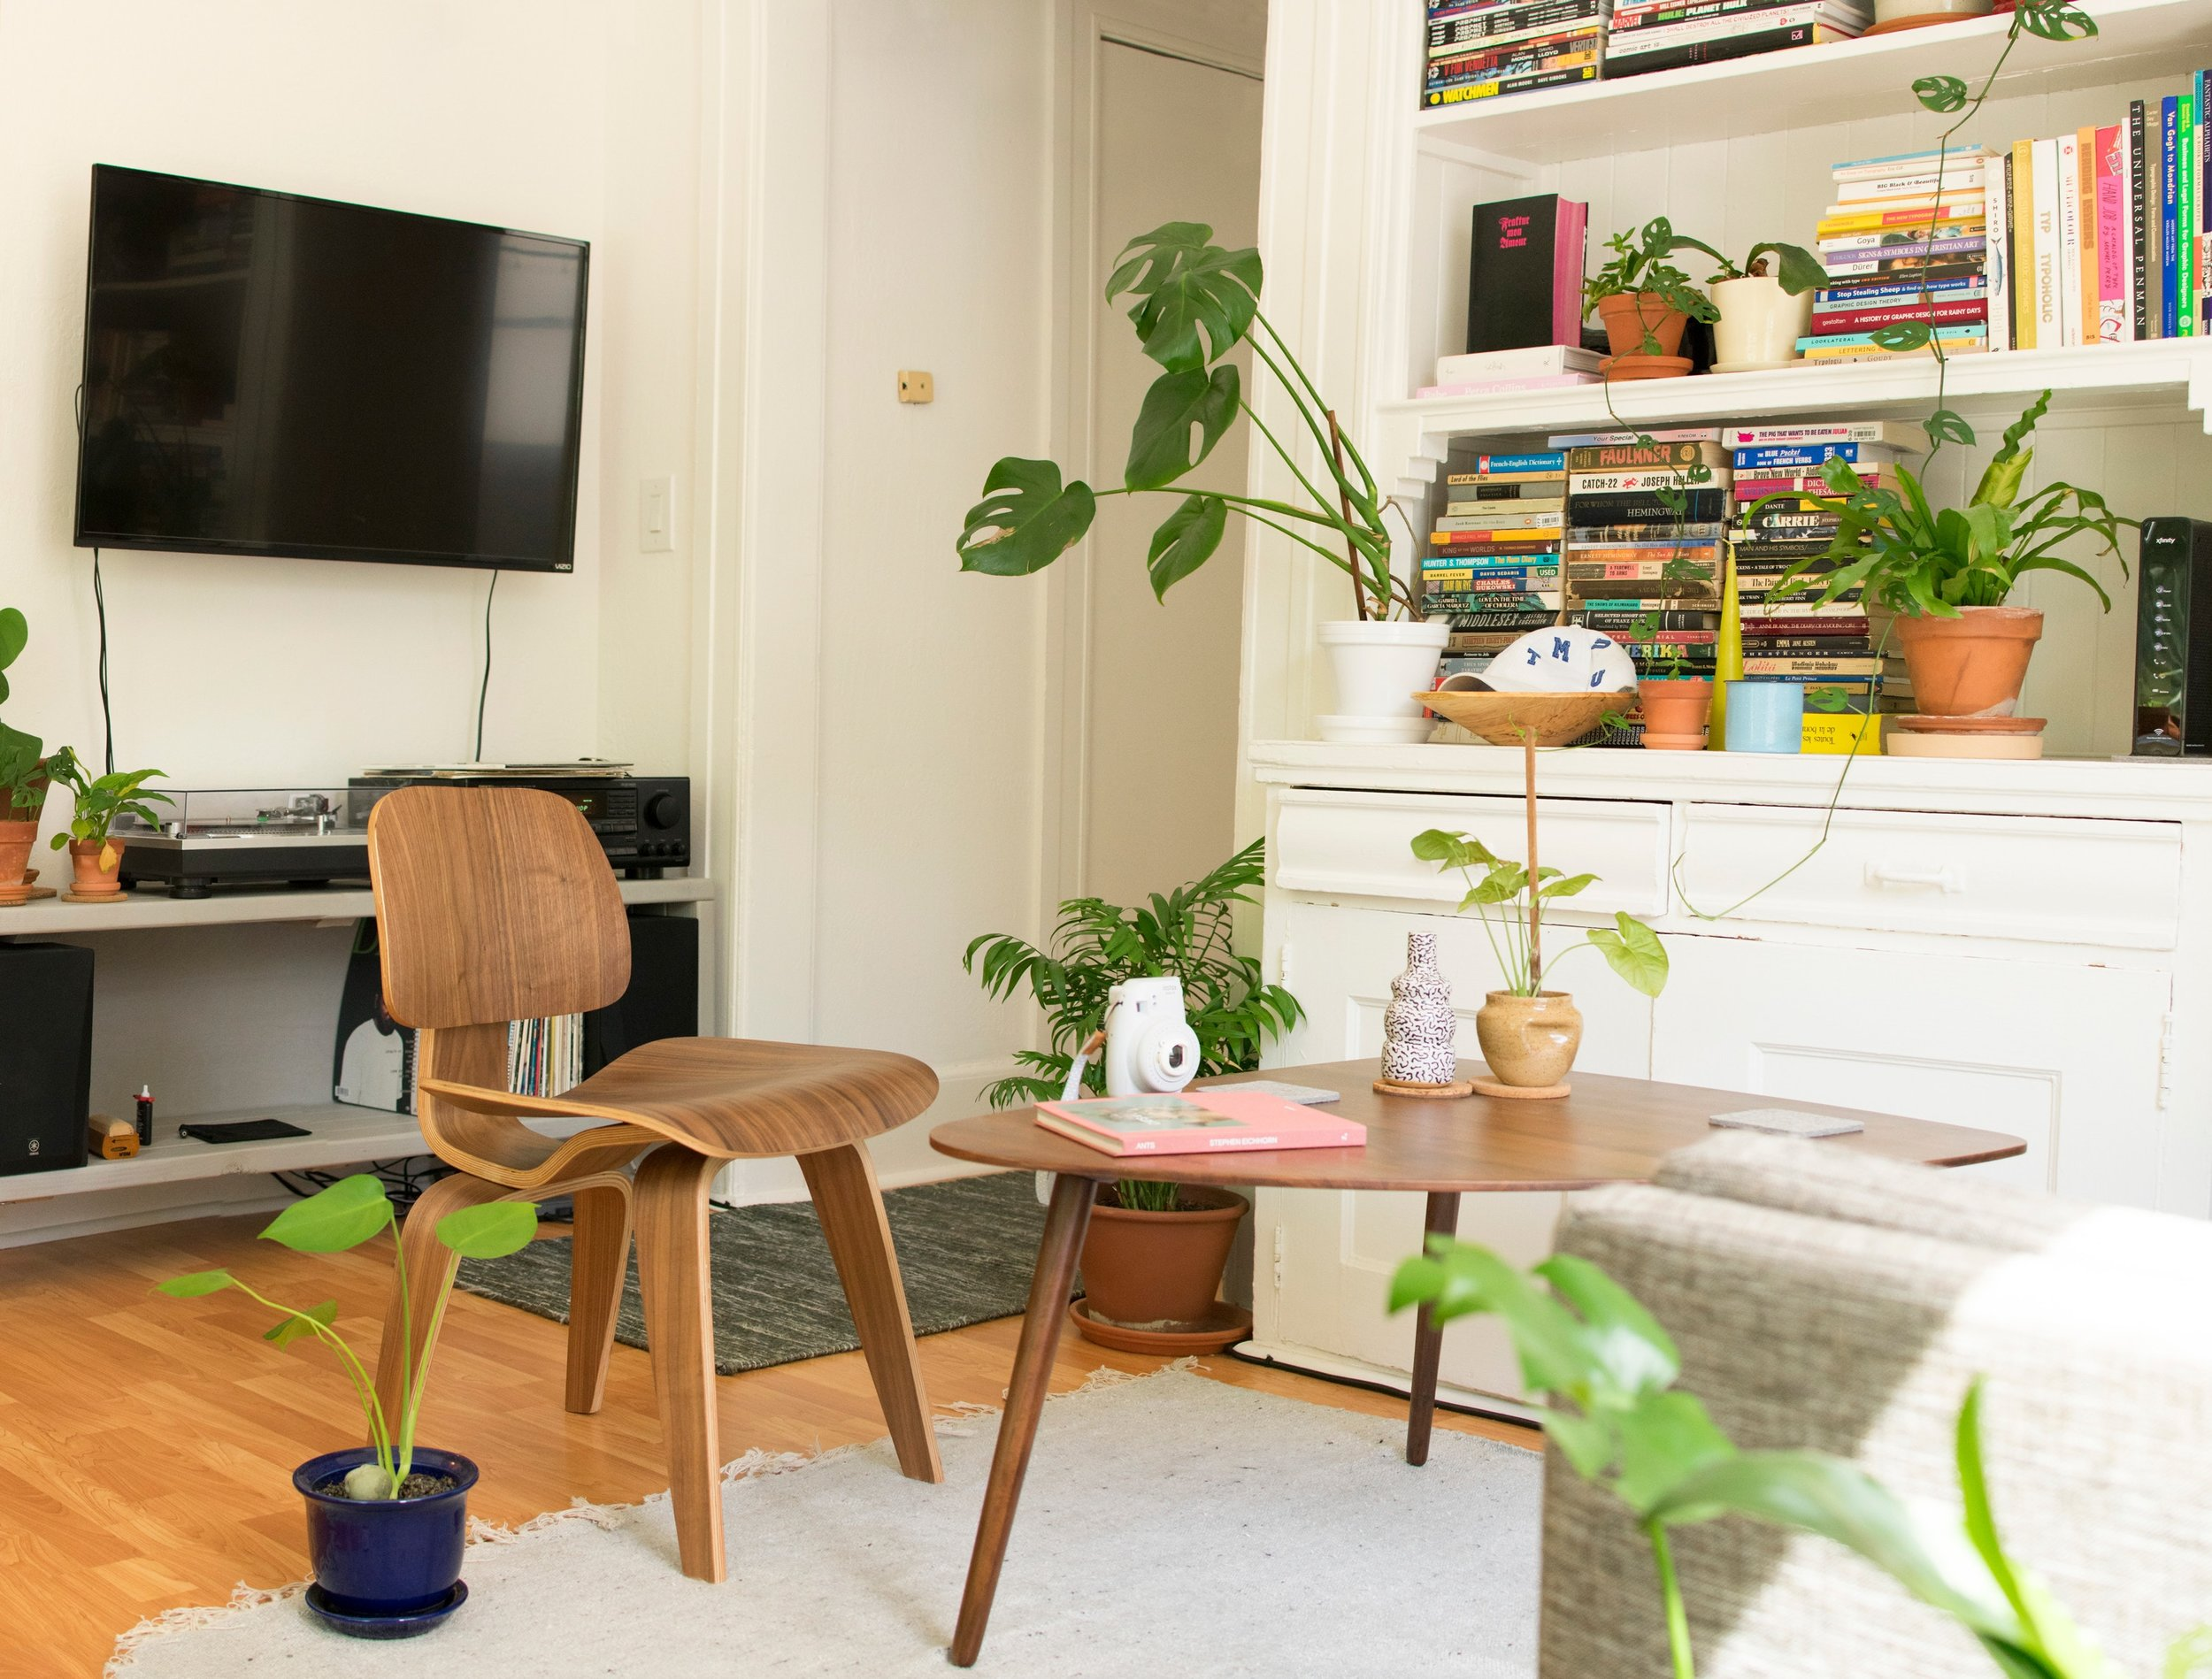 LIFESTYLE - A HASSLE-FREE MOVE-IN DAY?